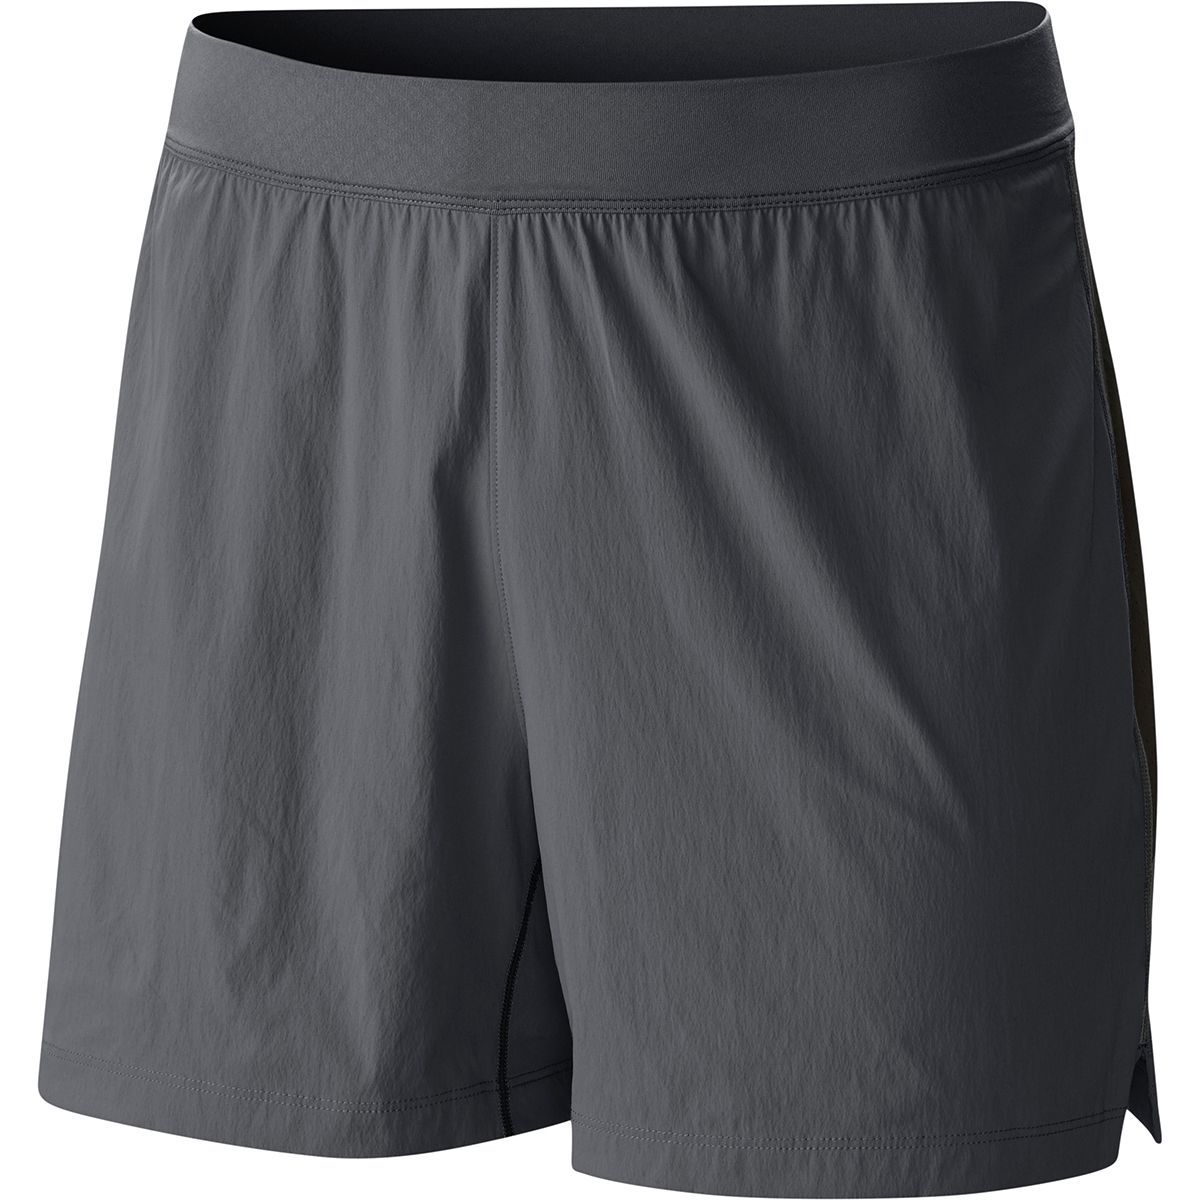 100% authentic 418d1 23718 The 11 Best Pairs of Running Shorts for Men - Shorts for 5K Races